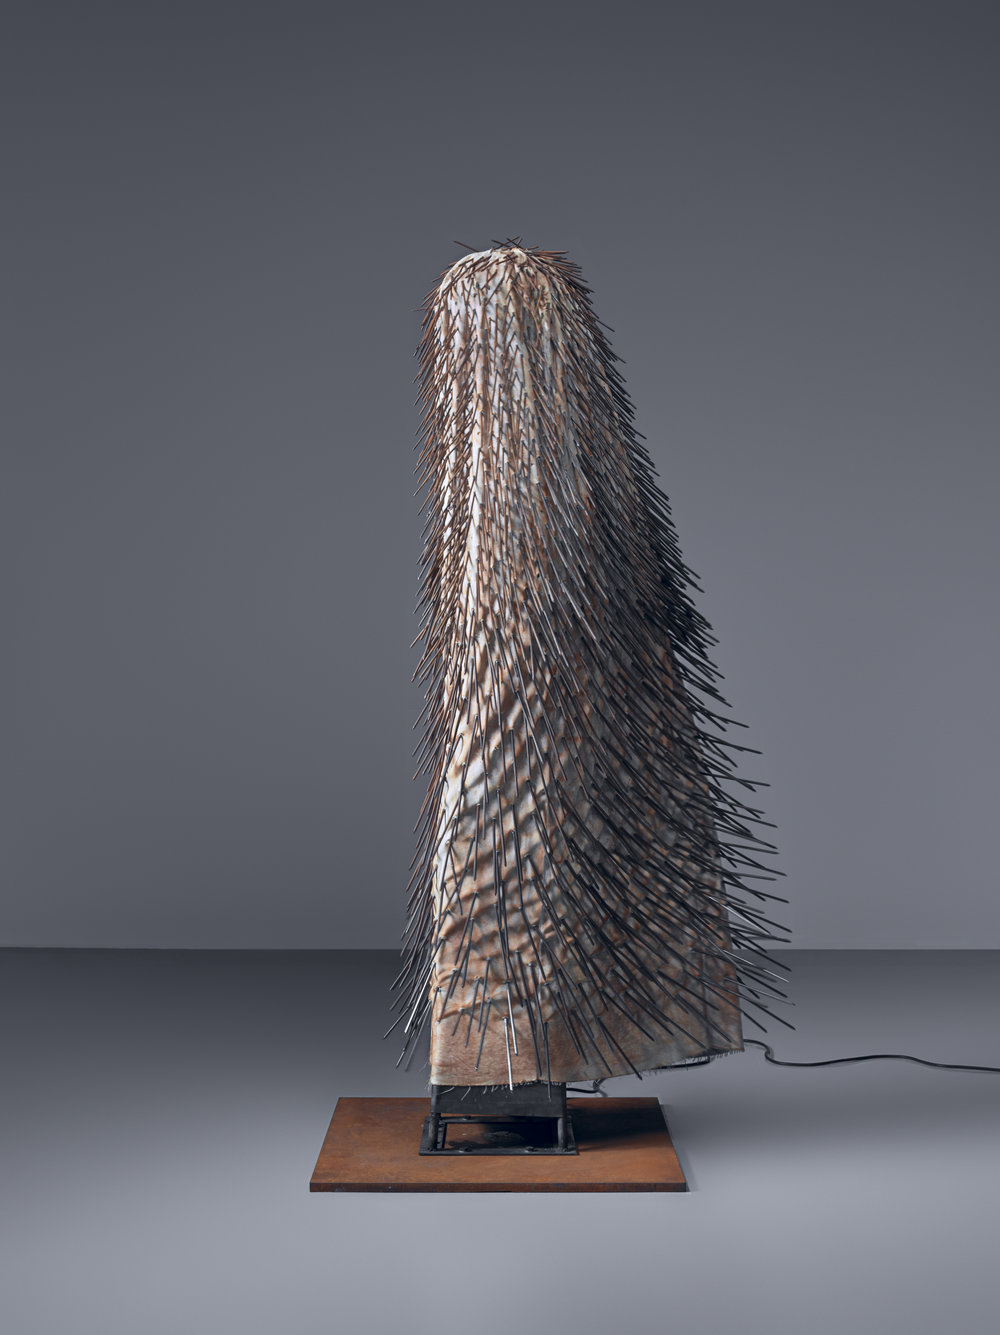 Günther Uecker New York Dancer I, 1965 Nails, cloth, metal, and electric motor, 200 × 30 × 30 cm Guggenheim Abu Dhabi © Günther Uecker Photo: Erik and Petra Hesmerg © Guggenheim Abu Dhabi